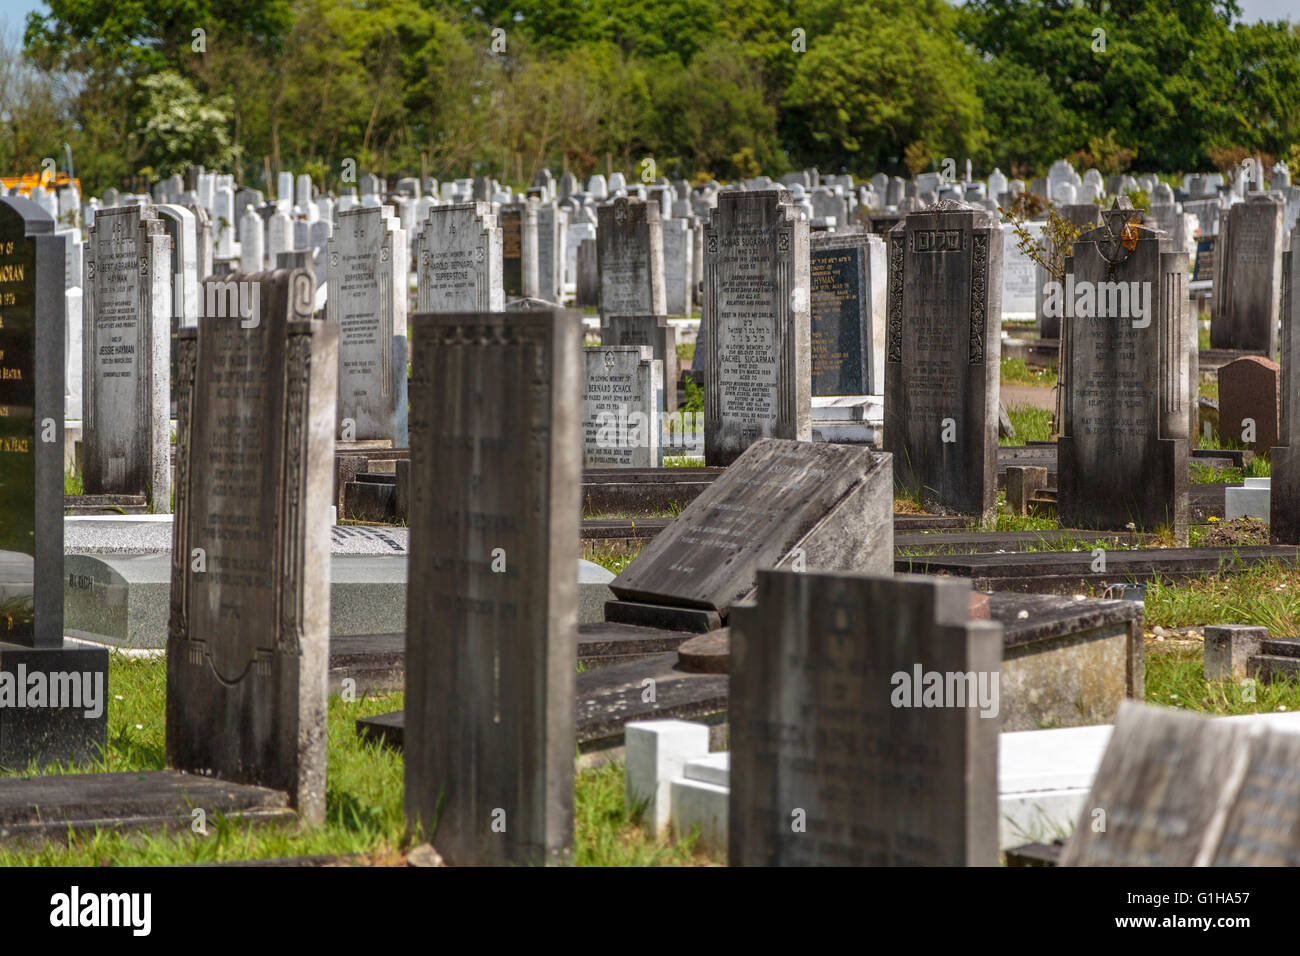 Gravestones in a Jewish cemetery London UK - Stock Image